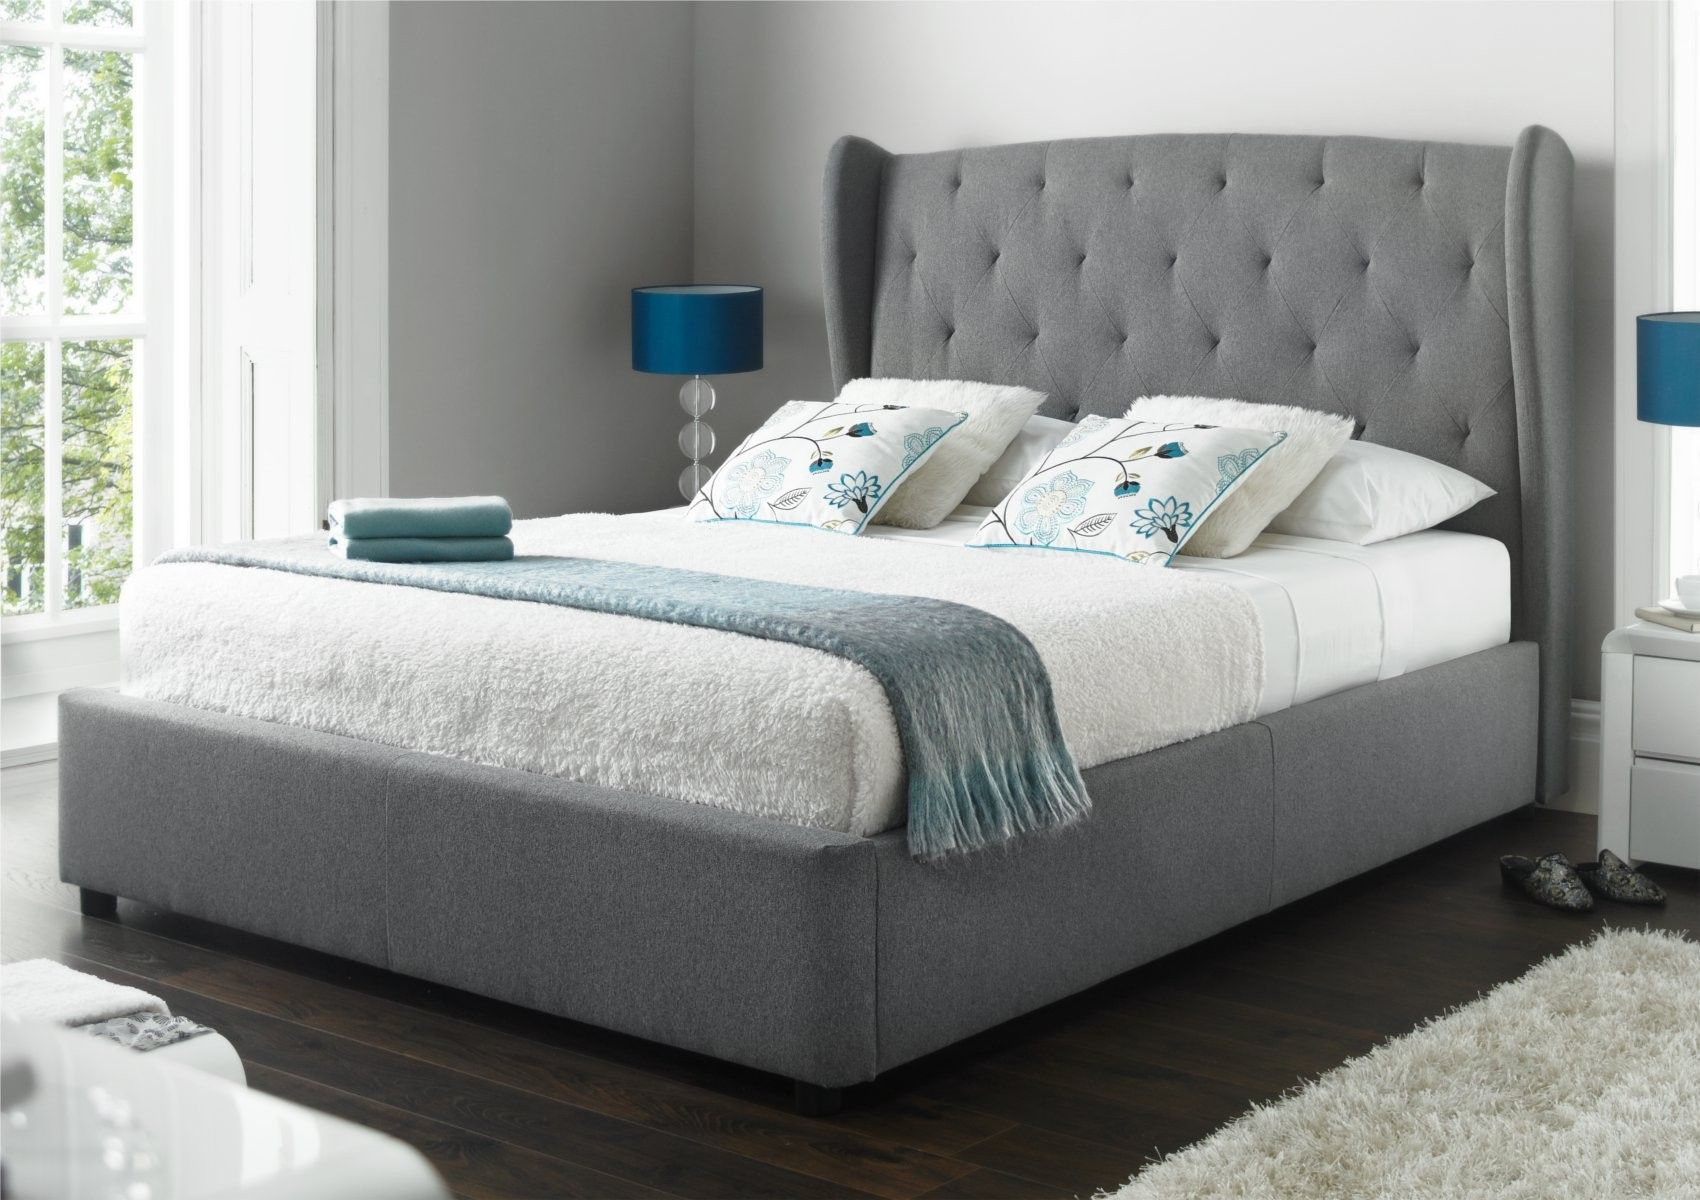 Upholstered wing backed beds are one of the latest trends to hit the ...